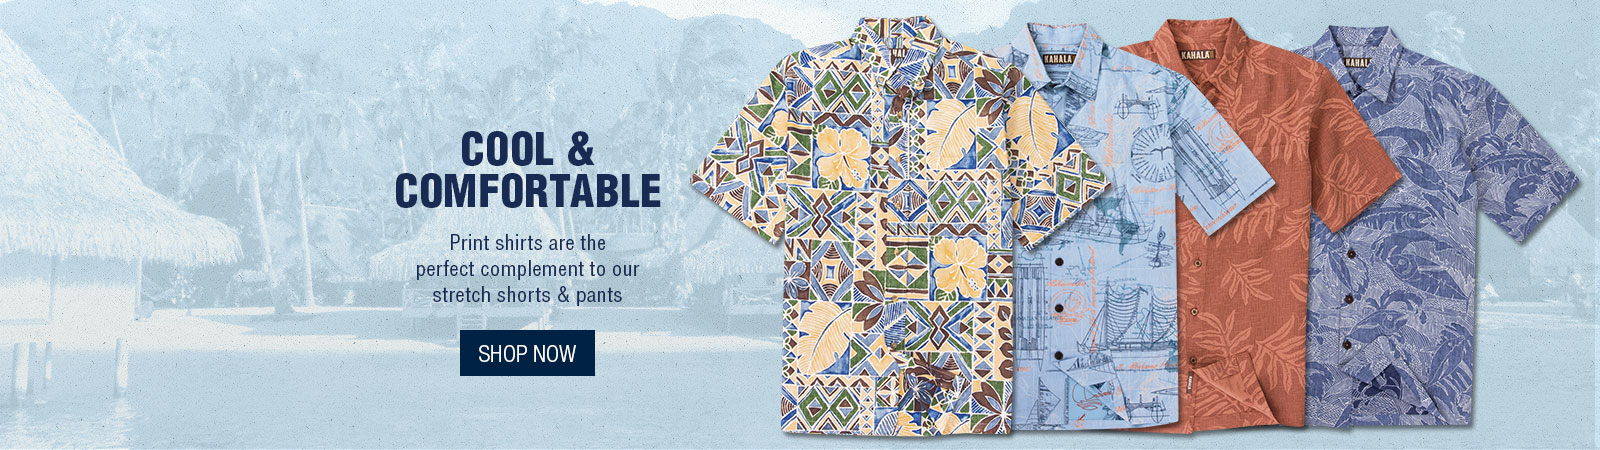 Cool & Comfortable - Print Shirts